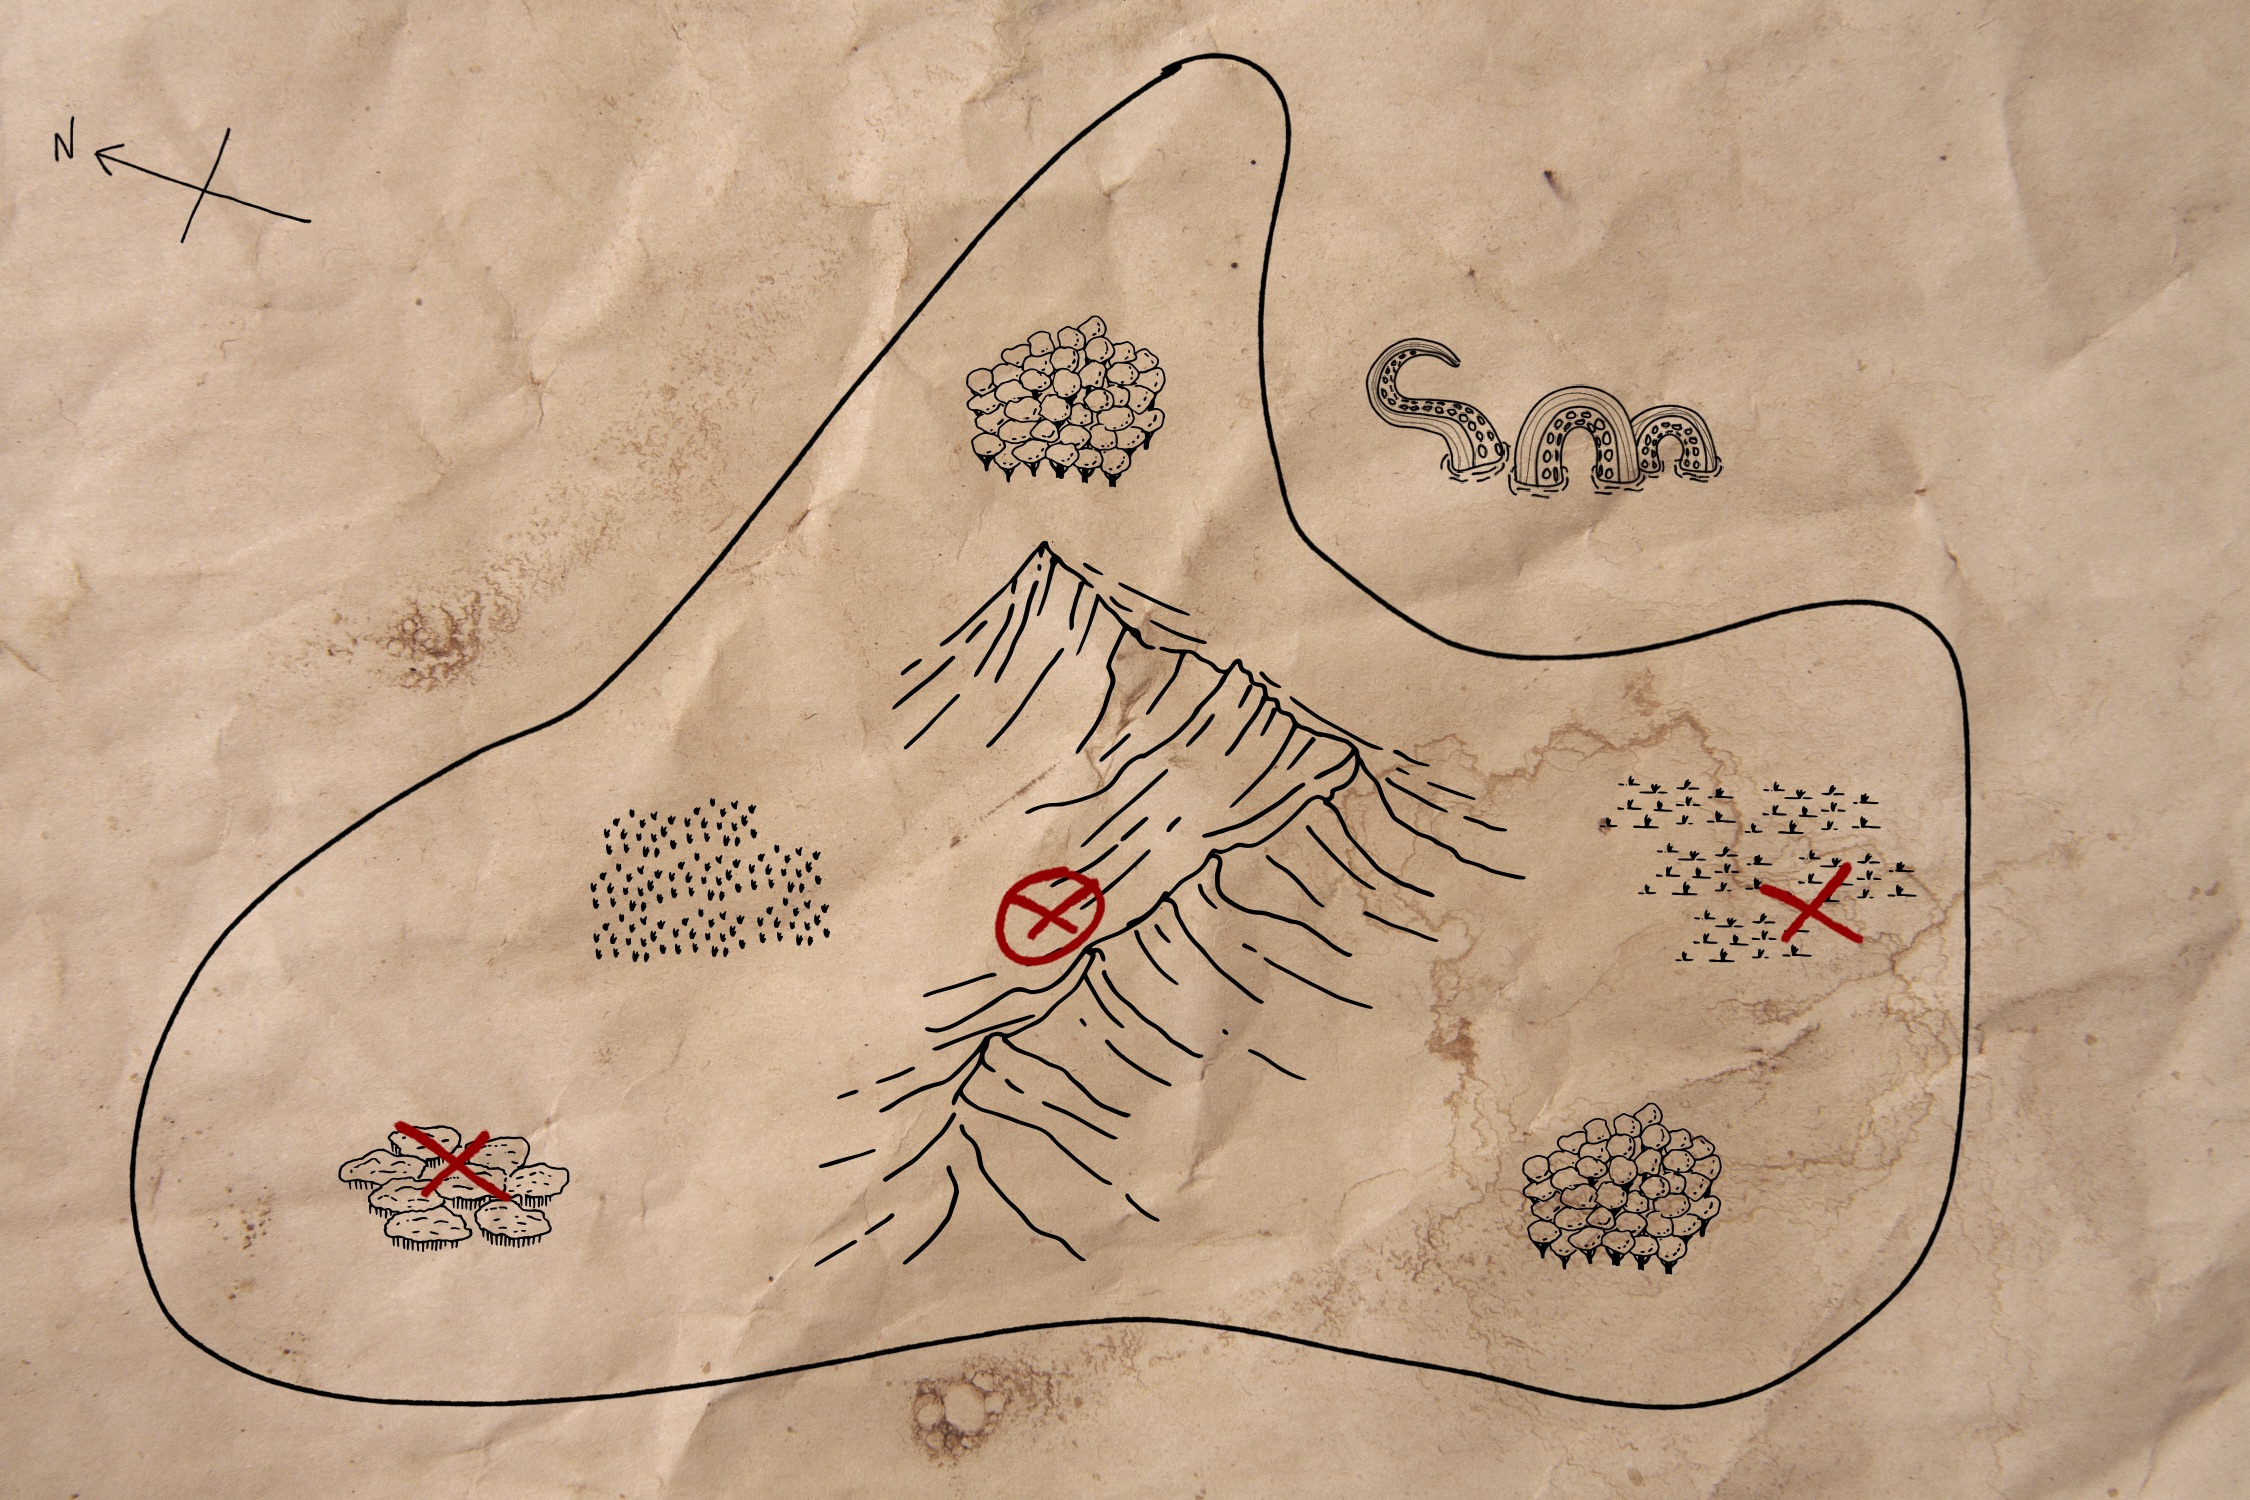 A mysterious map leading to treasures unknown